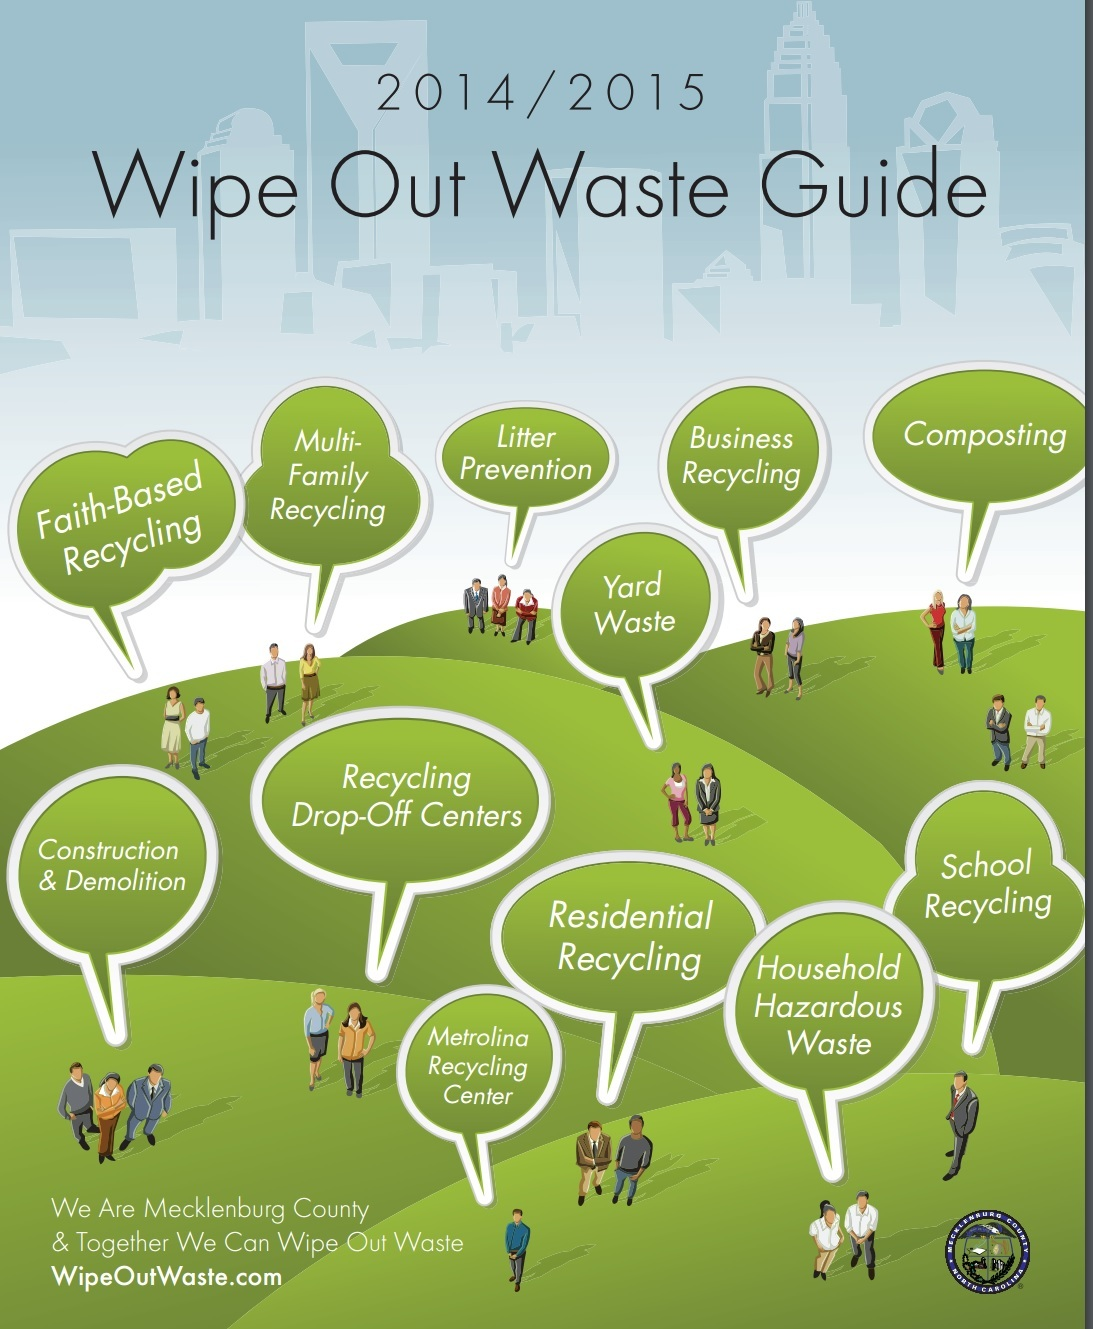 Charlotte Mecklenburg, NC Wipe Out Waste Guide